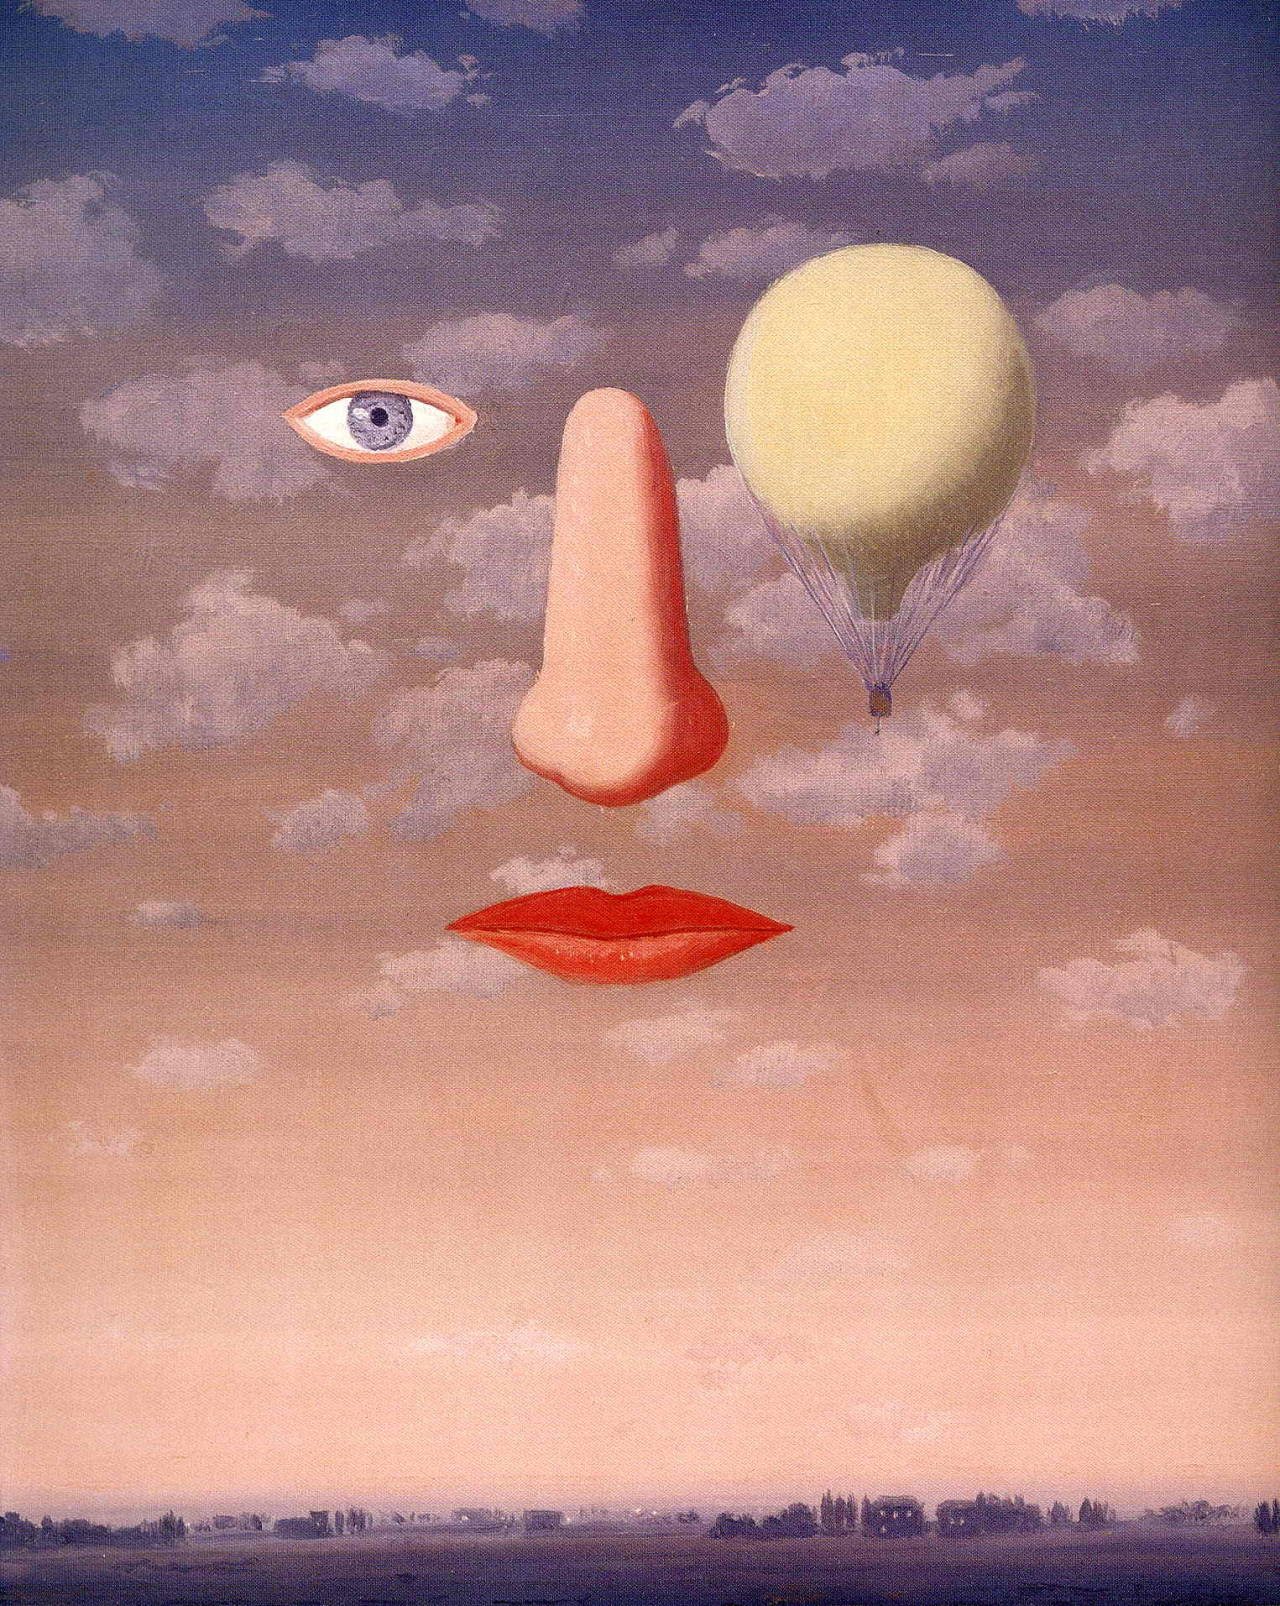 The beautiful relations, 1967 Rene Magritte